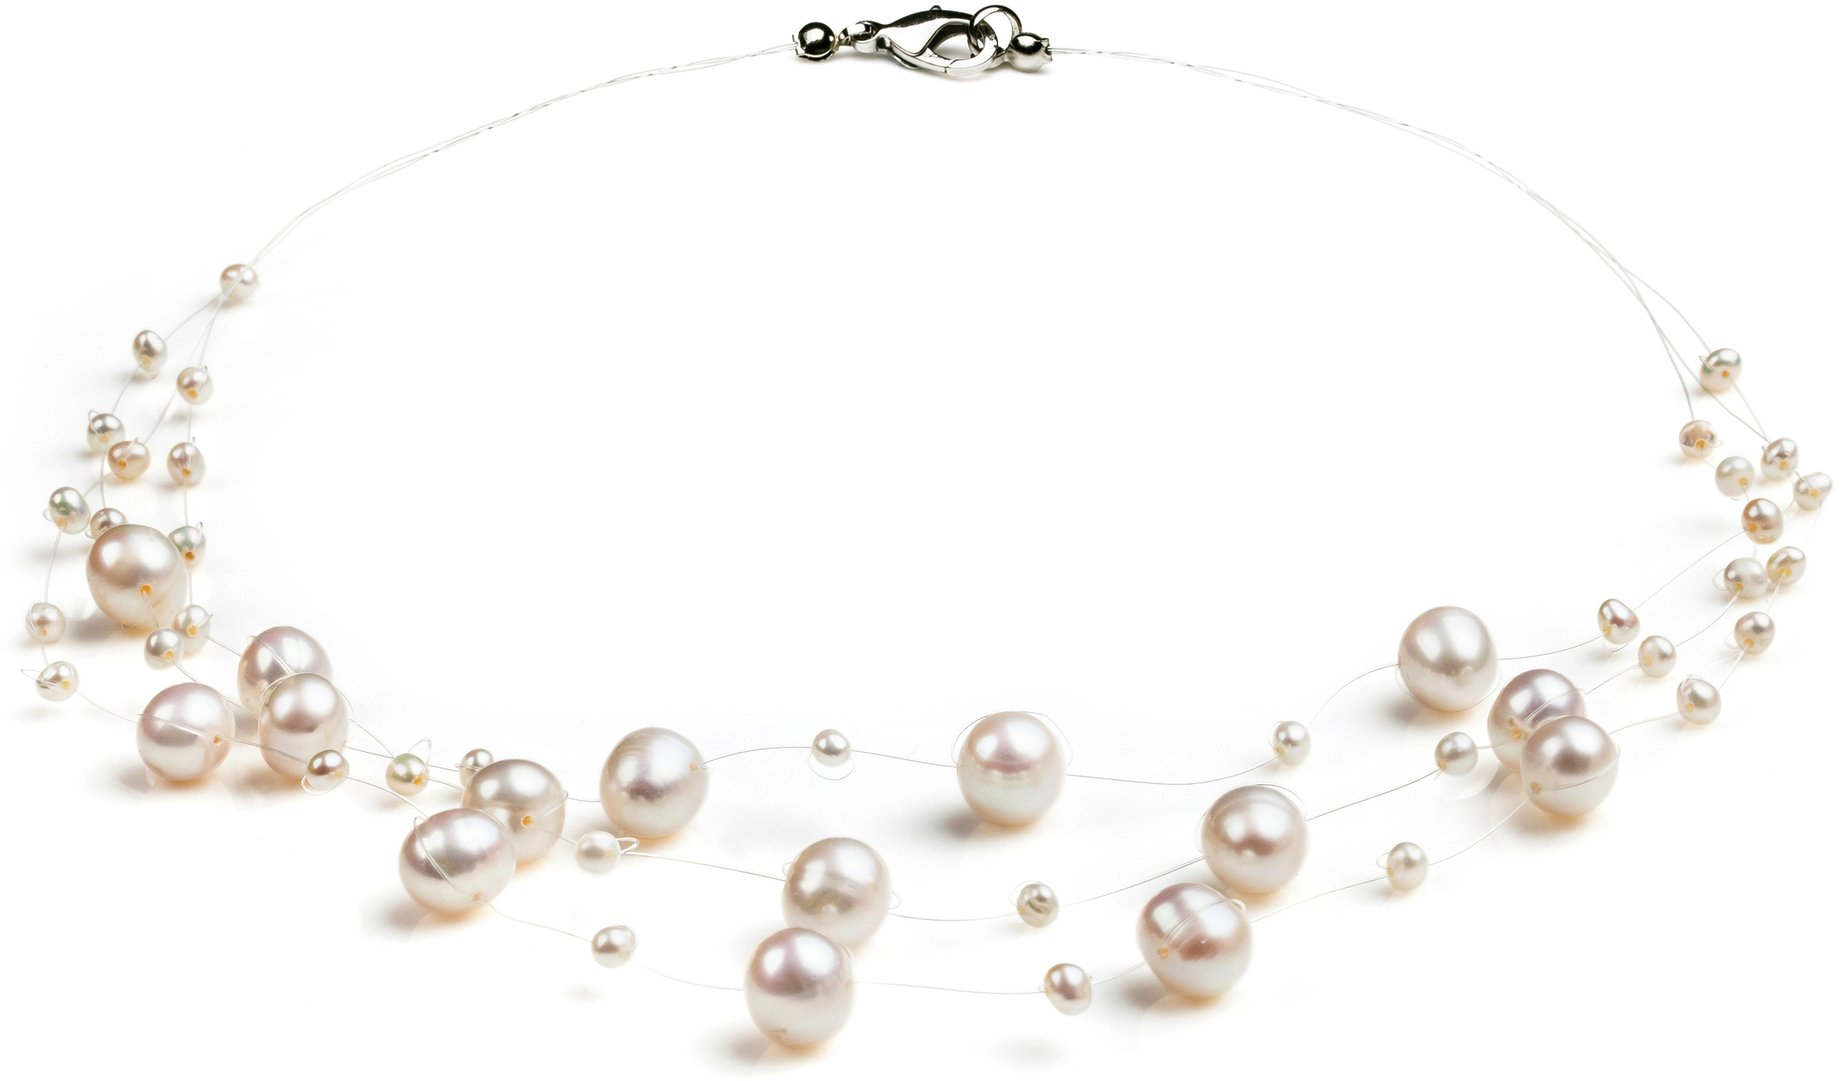 PearlsOnly Mary White 3-9mm A Quality Freshwater Cultured Pearl Necklace-18 in Princess length